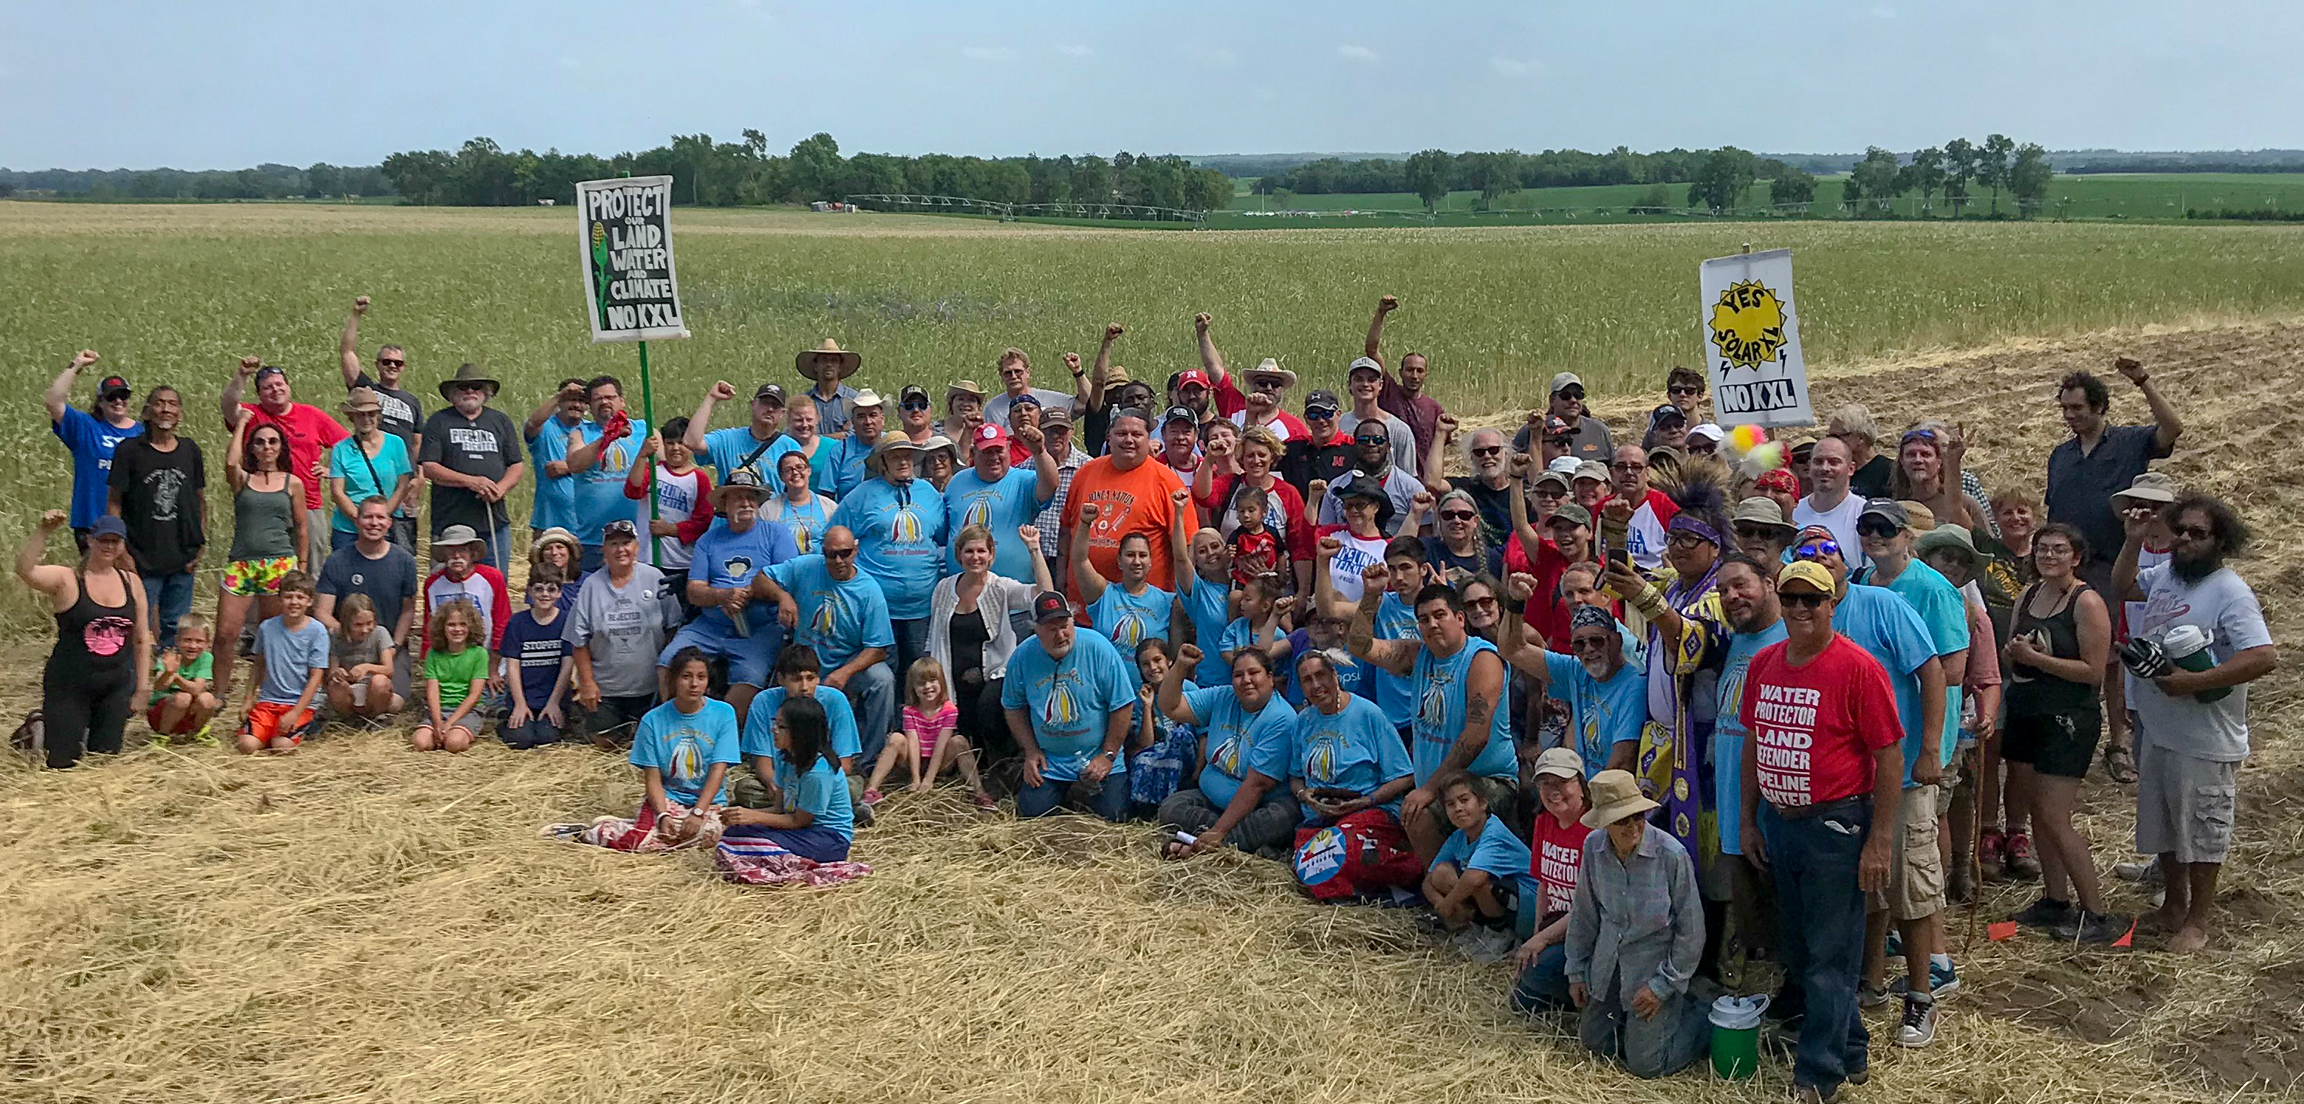 Ponca-group-crop-petition